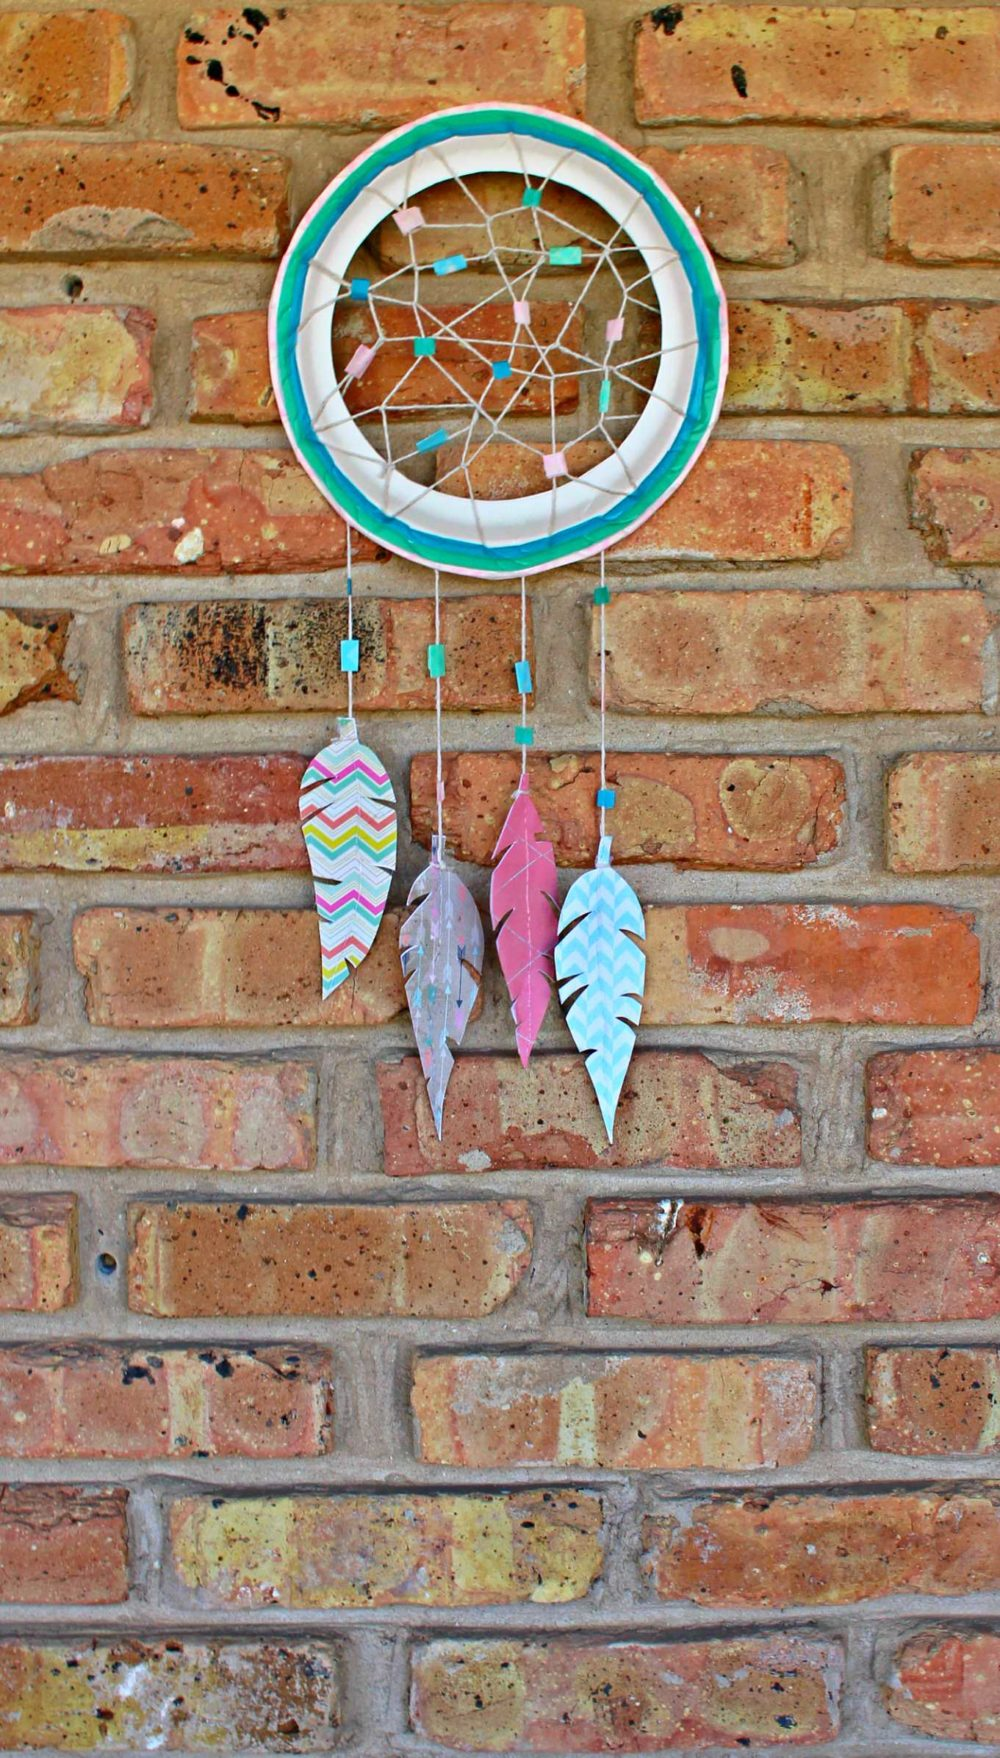 Paper dream catcher made with paper feathers, twine and washi tape and displayed on a wall